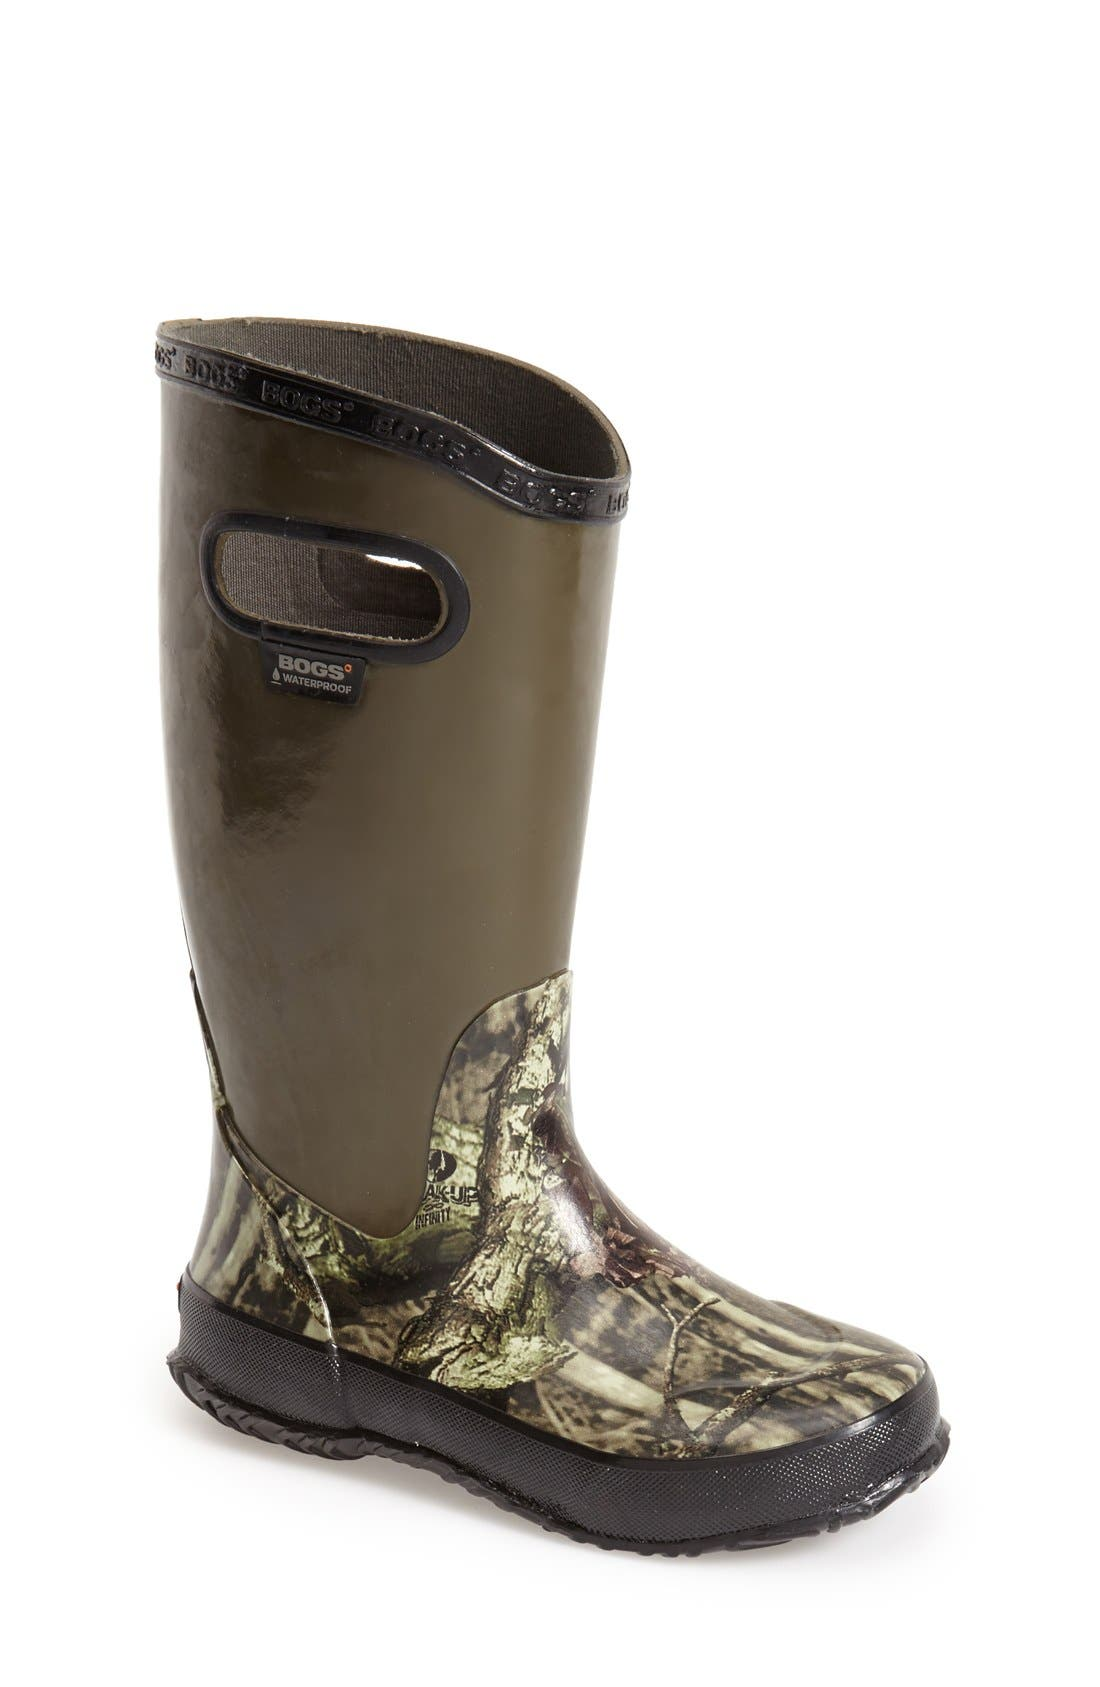 Main Image - Bogs Hunting Waterproof Rubber Rain Boot (Walker, Toddler, Little Kid & Big Kid)